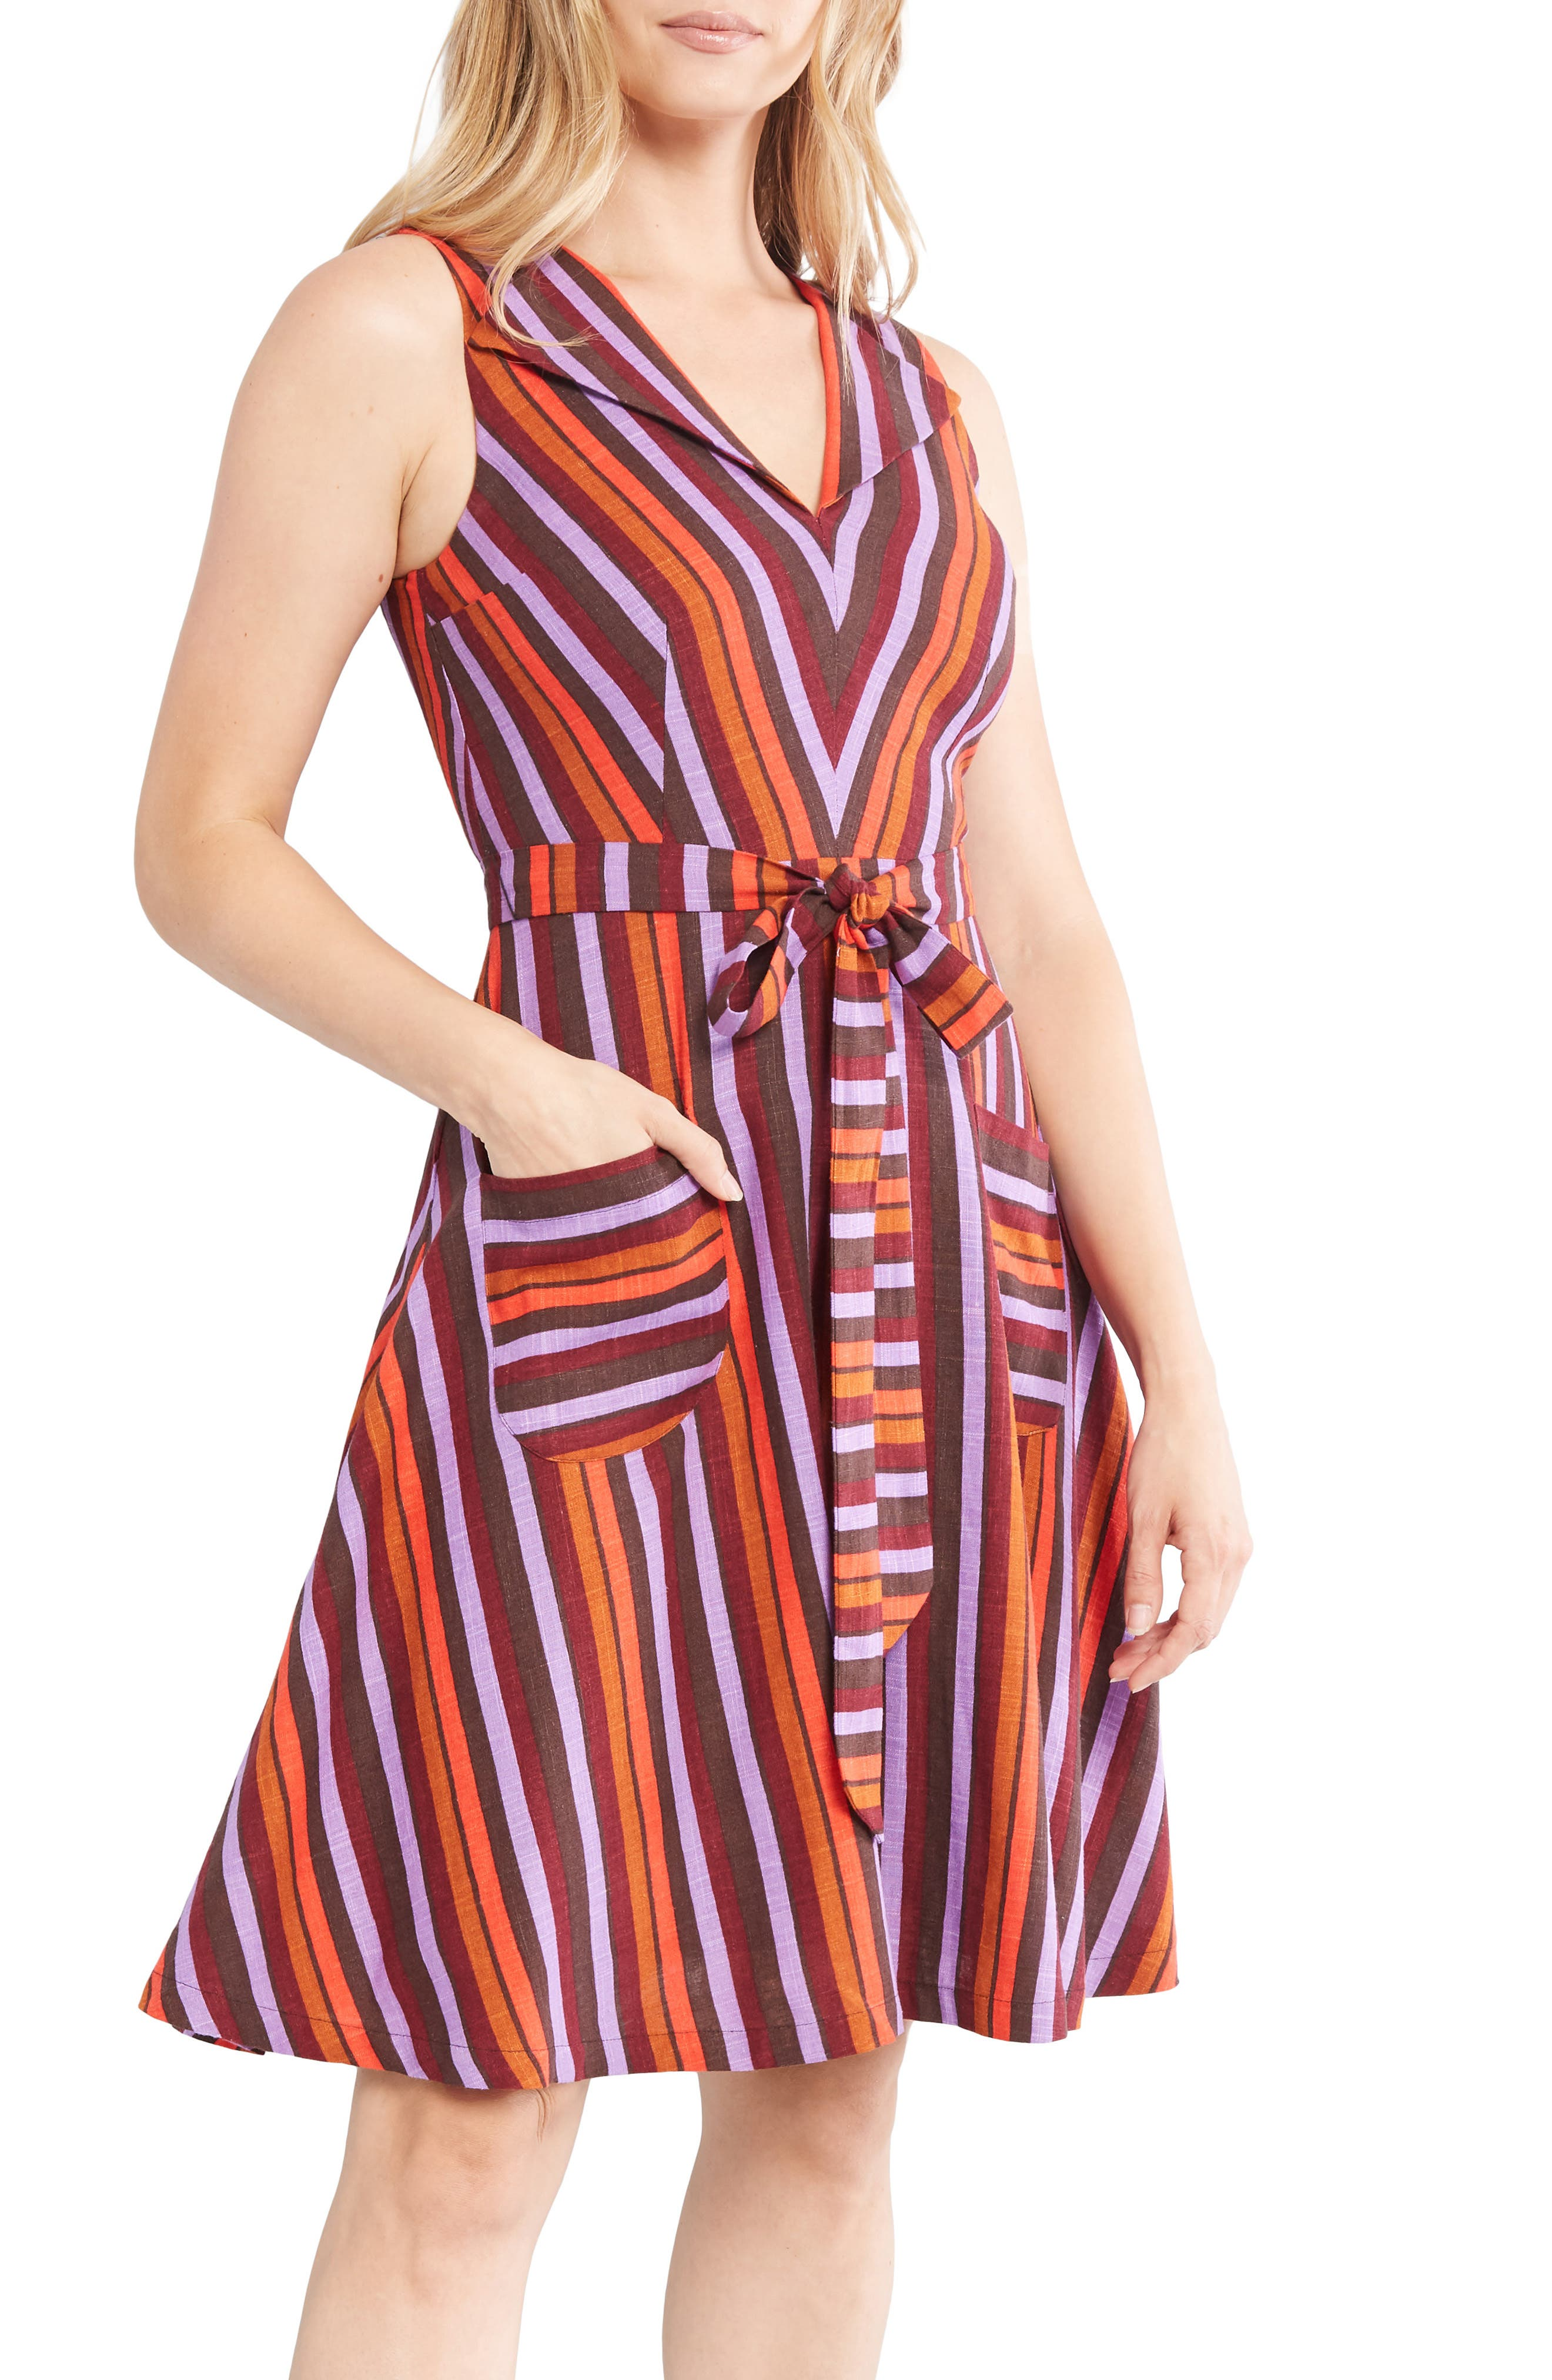 Pin Up Dresses | Pinup Clothing & Fashion Womens Modcloth Stripe Sleeveless Fit  Flare Dress Size Large - Burgundy $53.40 AT vintagedancer.com